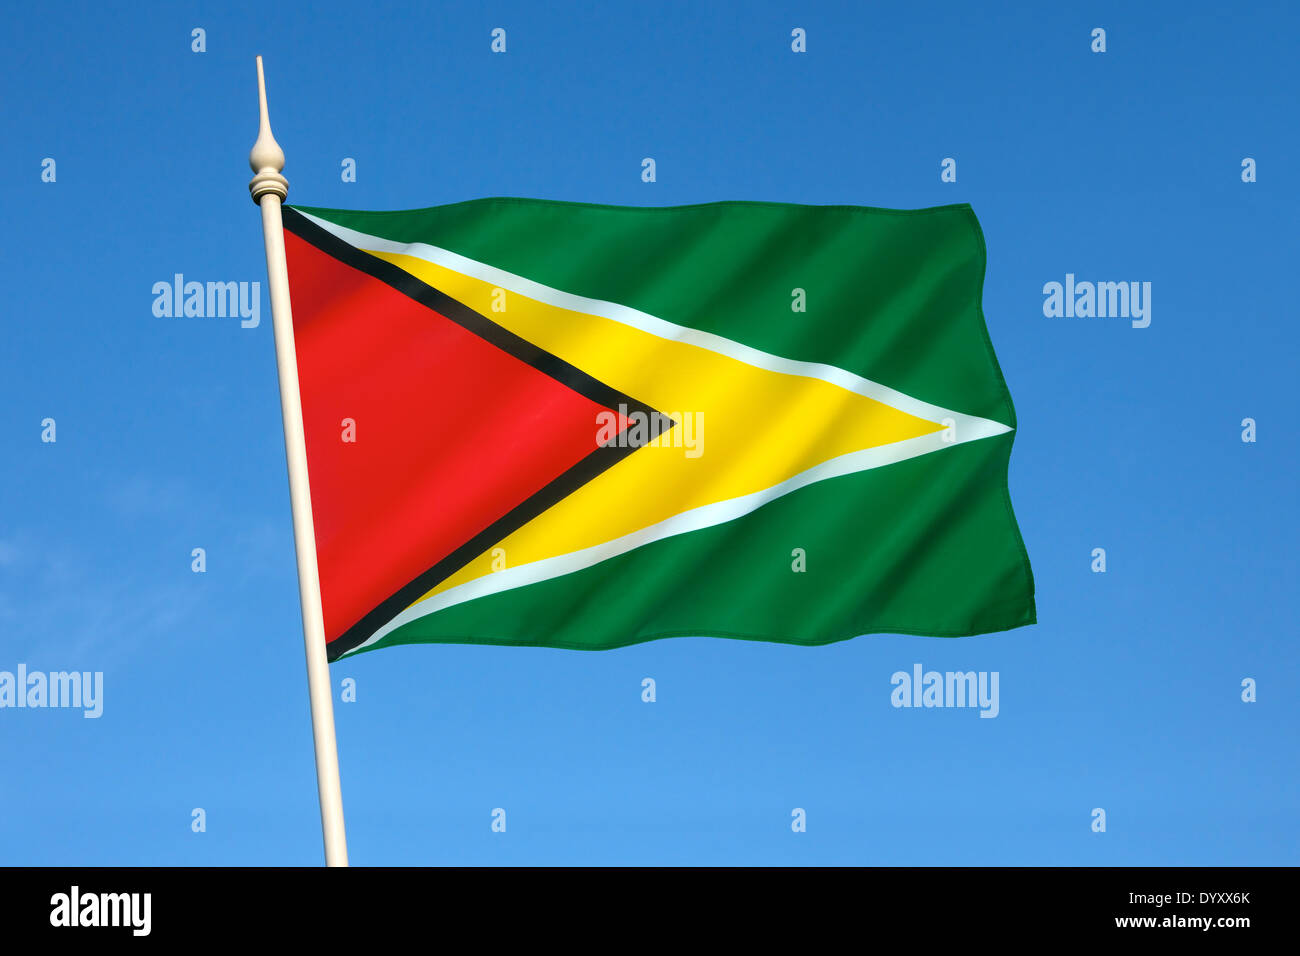 The flag of Guyana - Stock Image